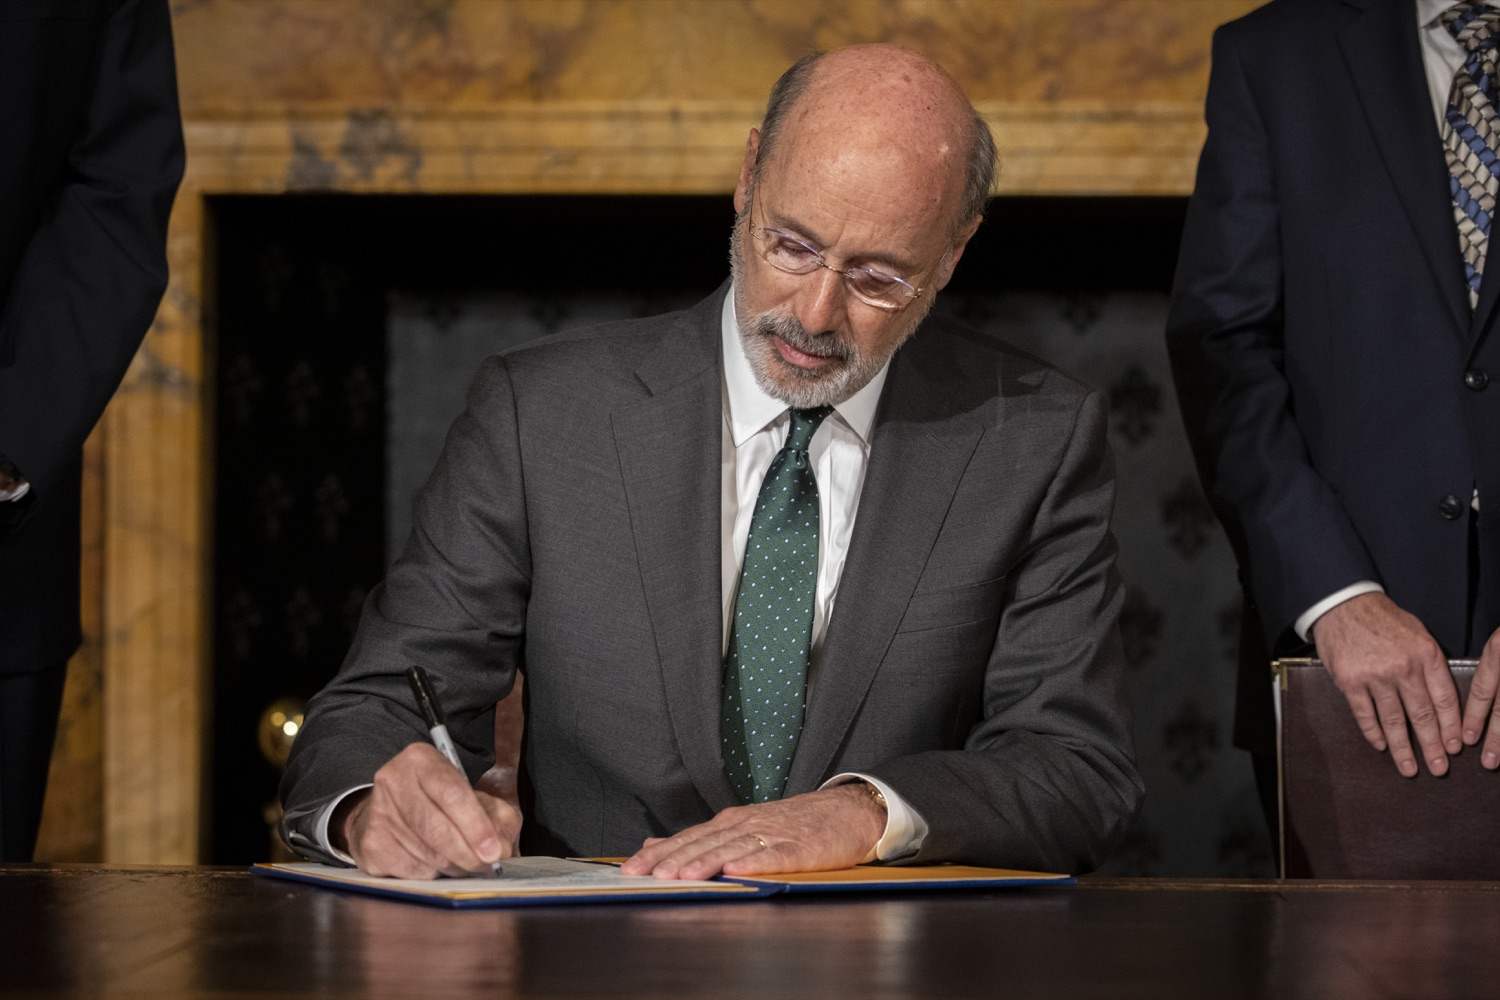 "<a href=""http://filesource.abacast.com/commonwealthofpa/photo/17469_GOV_ClimateChange_DE_002.jpg"" target=""_blank"">⇣ Download Photo<br></a>Governor Wolf Takes Executive Action to Combat Climate Change, Carbon Emissions"